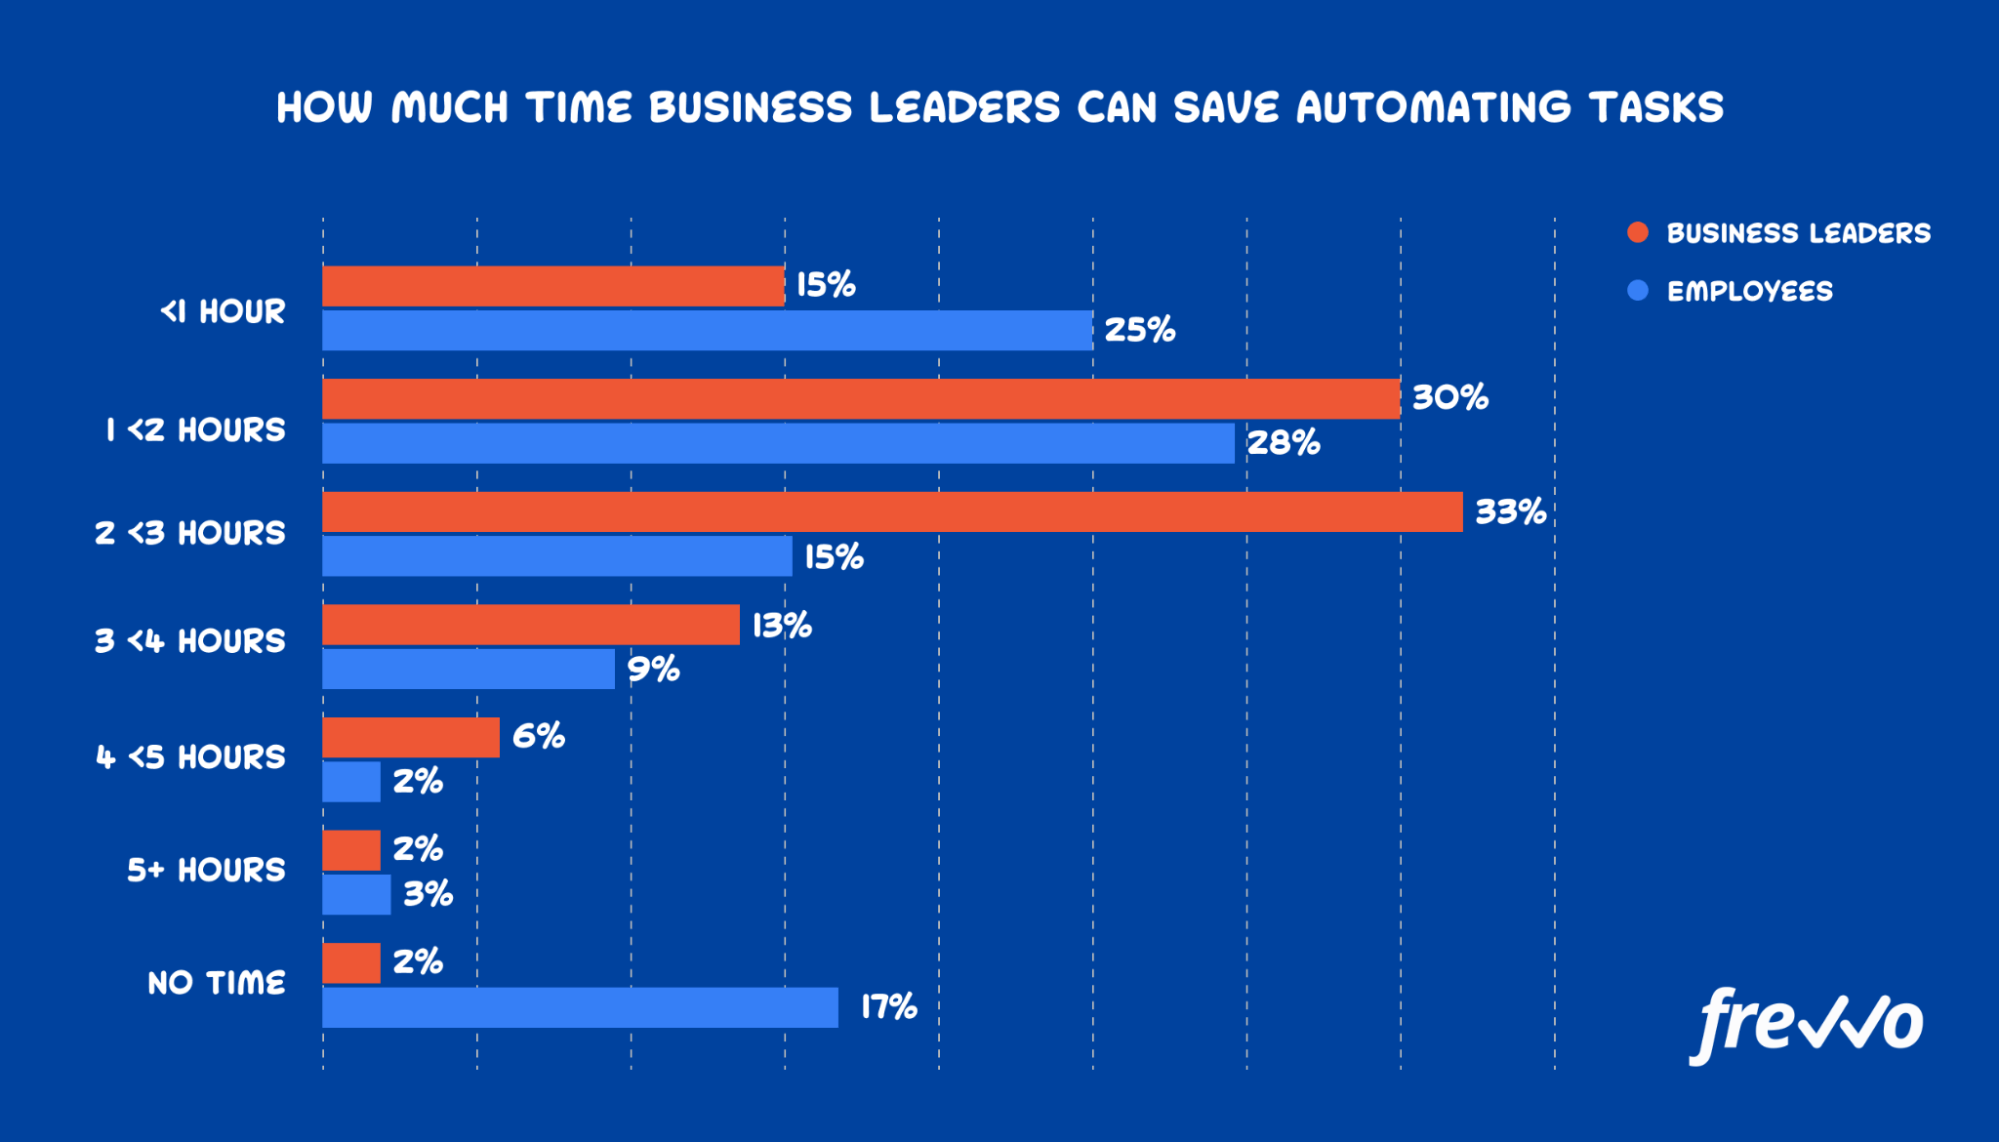 how much time business leaders can save automating tasks